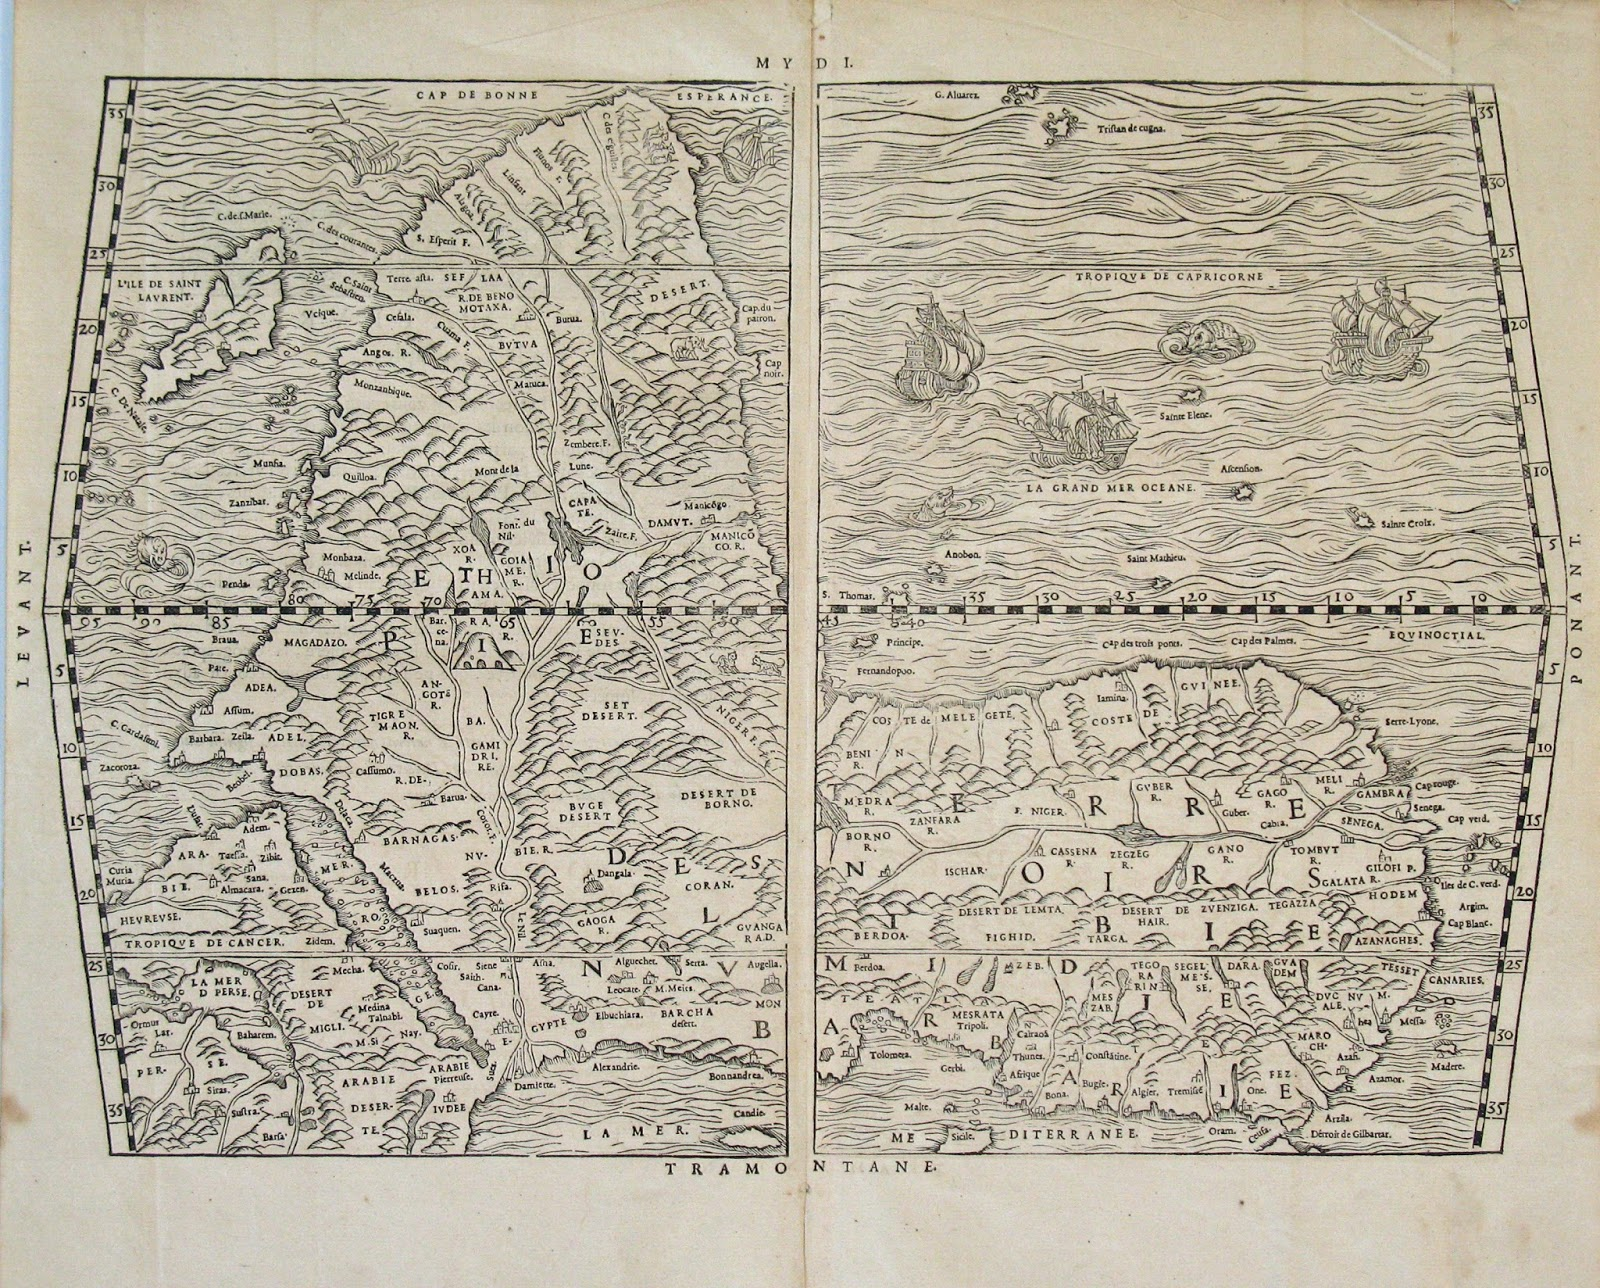 A Detail Of The 1520 Leo AfricMap Derived And Compiled From A Collection Of Maps Leo Was Traveling With When He Was Captured By Pirates In The